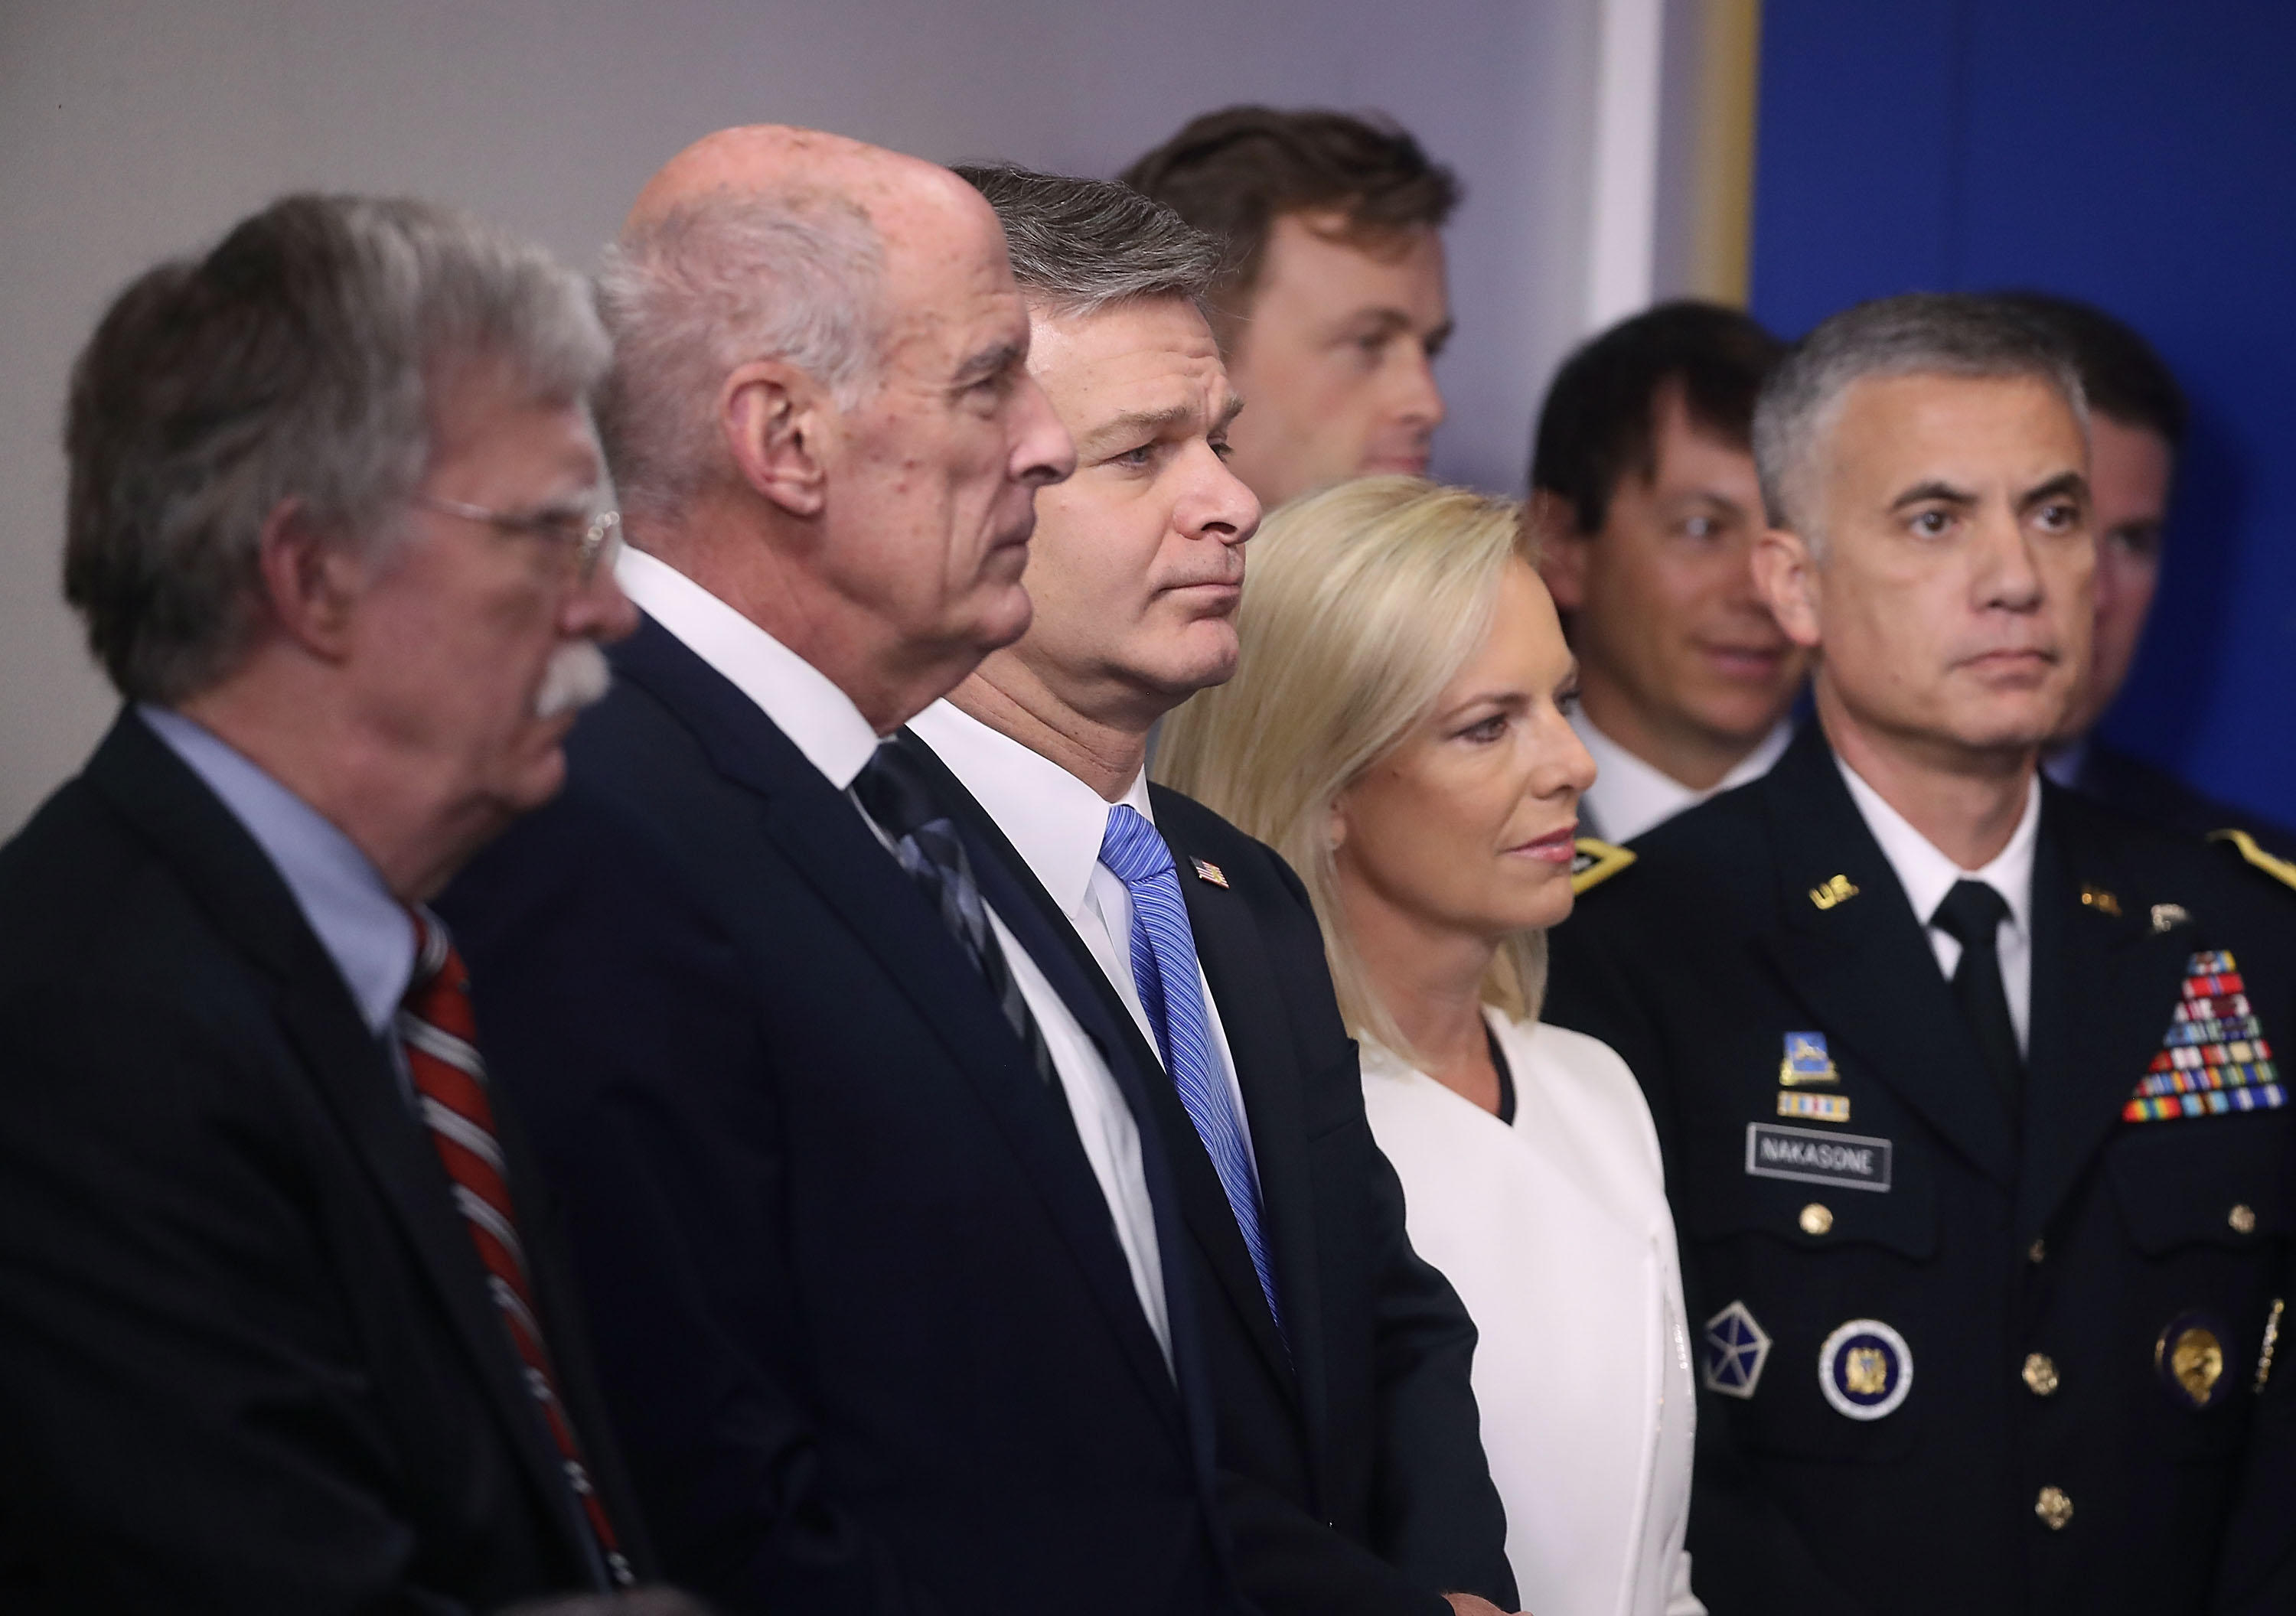 Top National Security Officials Join Sarah Sanders At White House Press Briefing